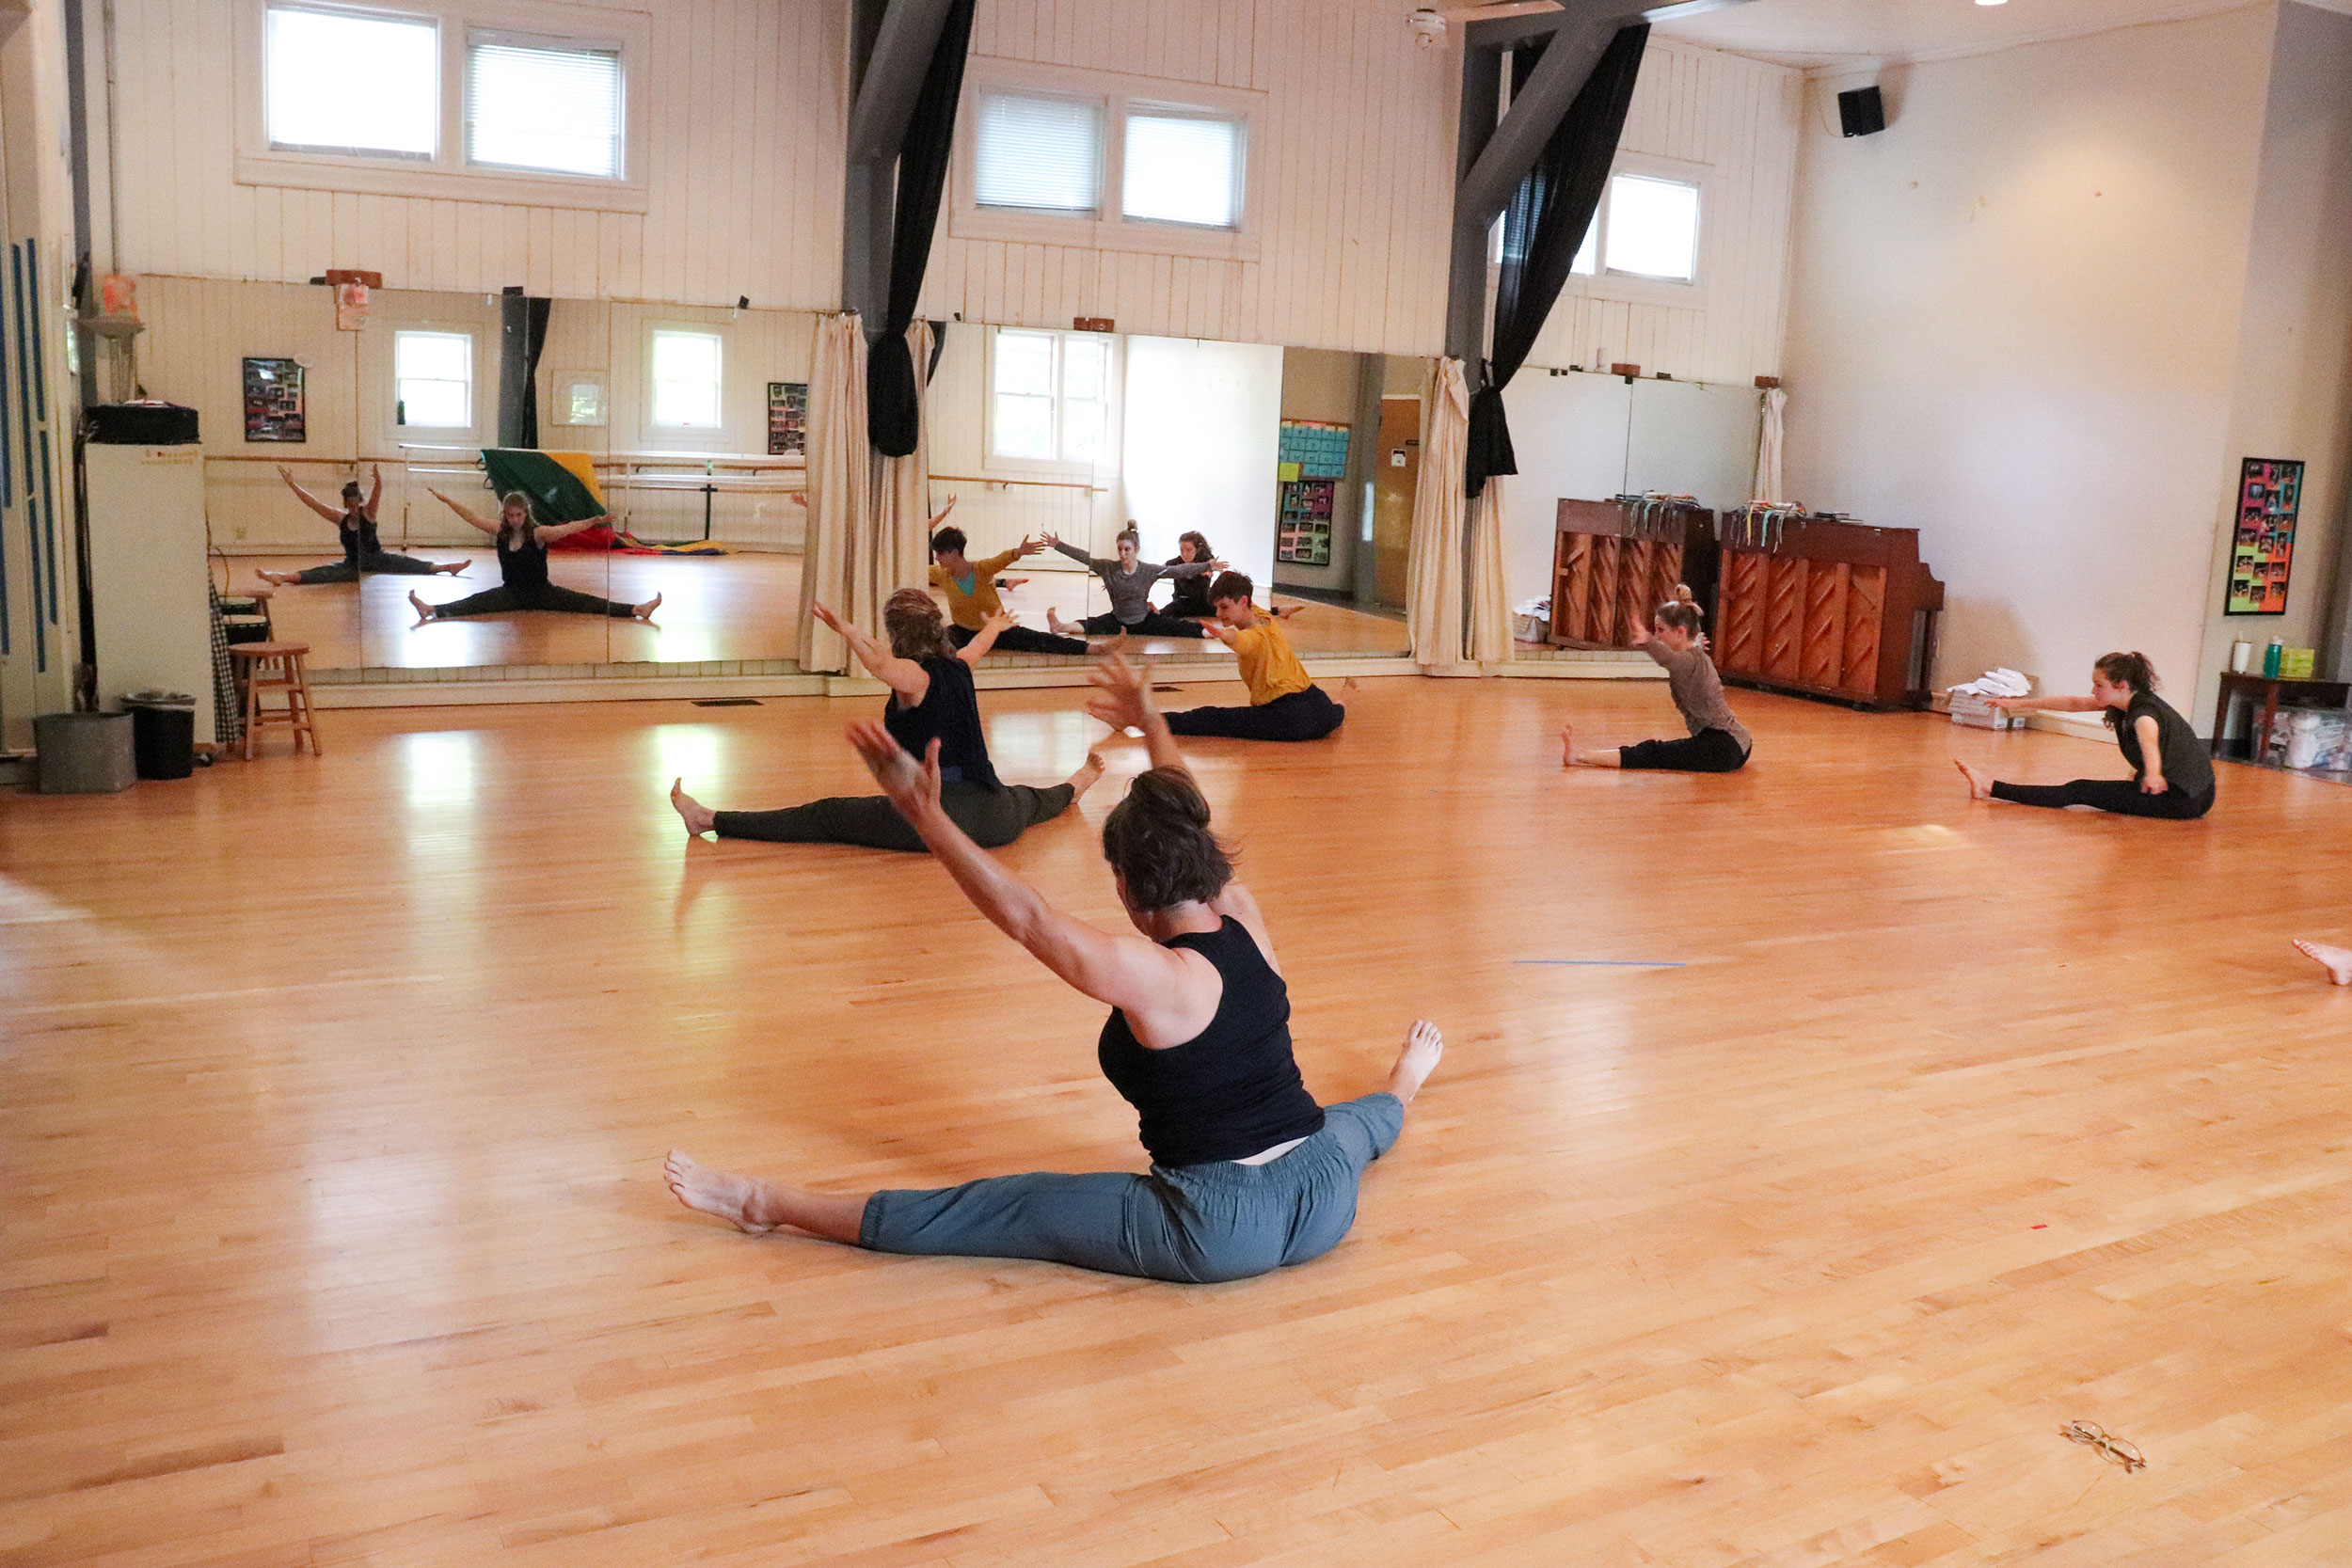 Adult students learn modern dance movements.